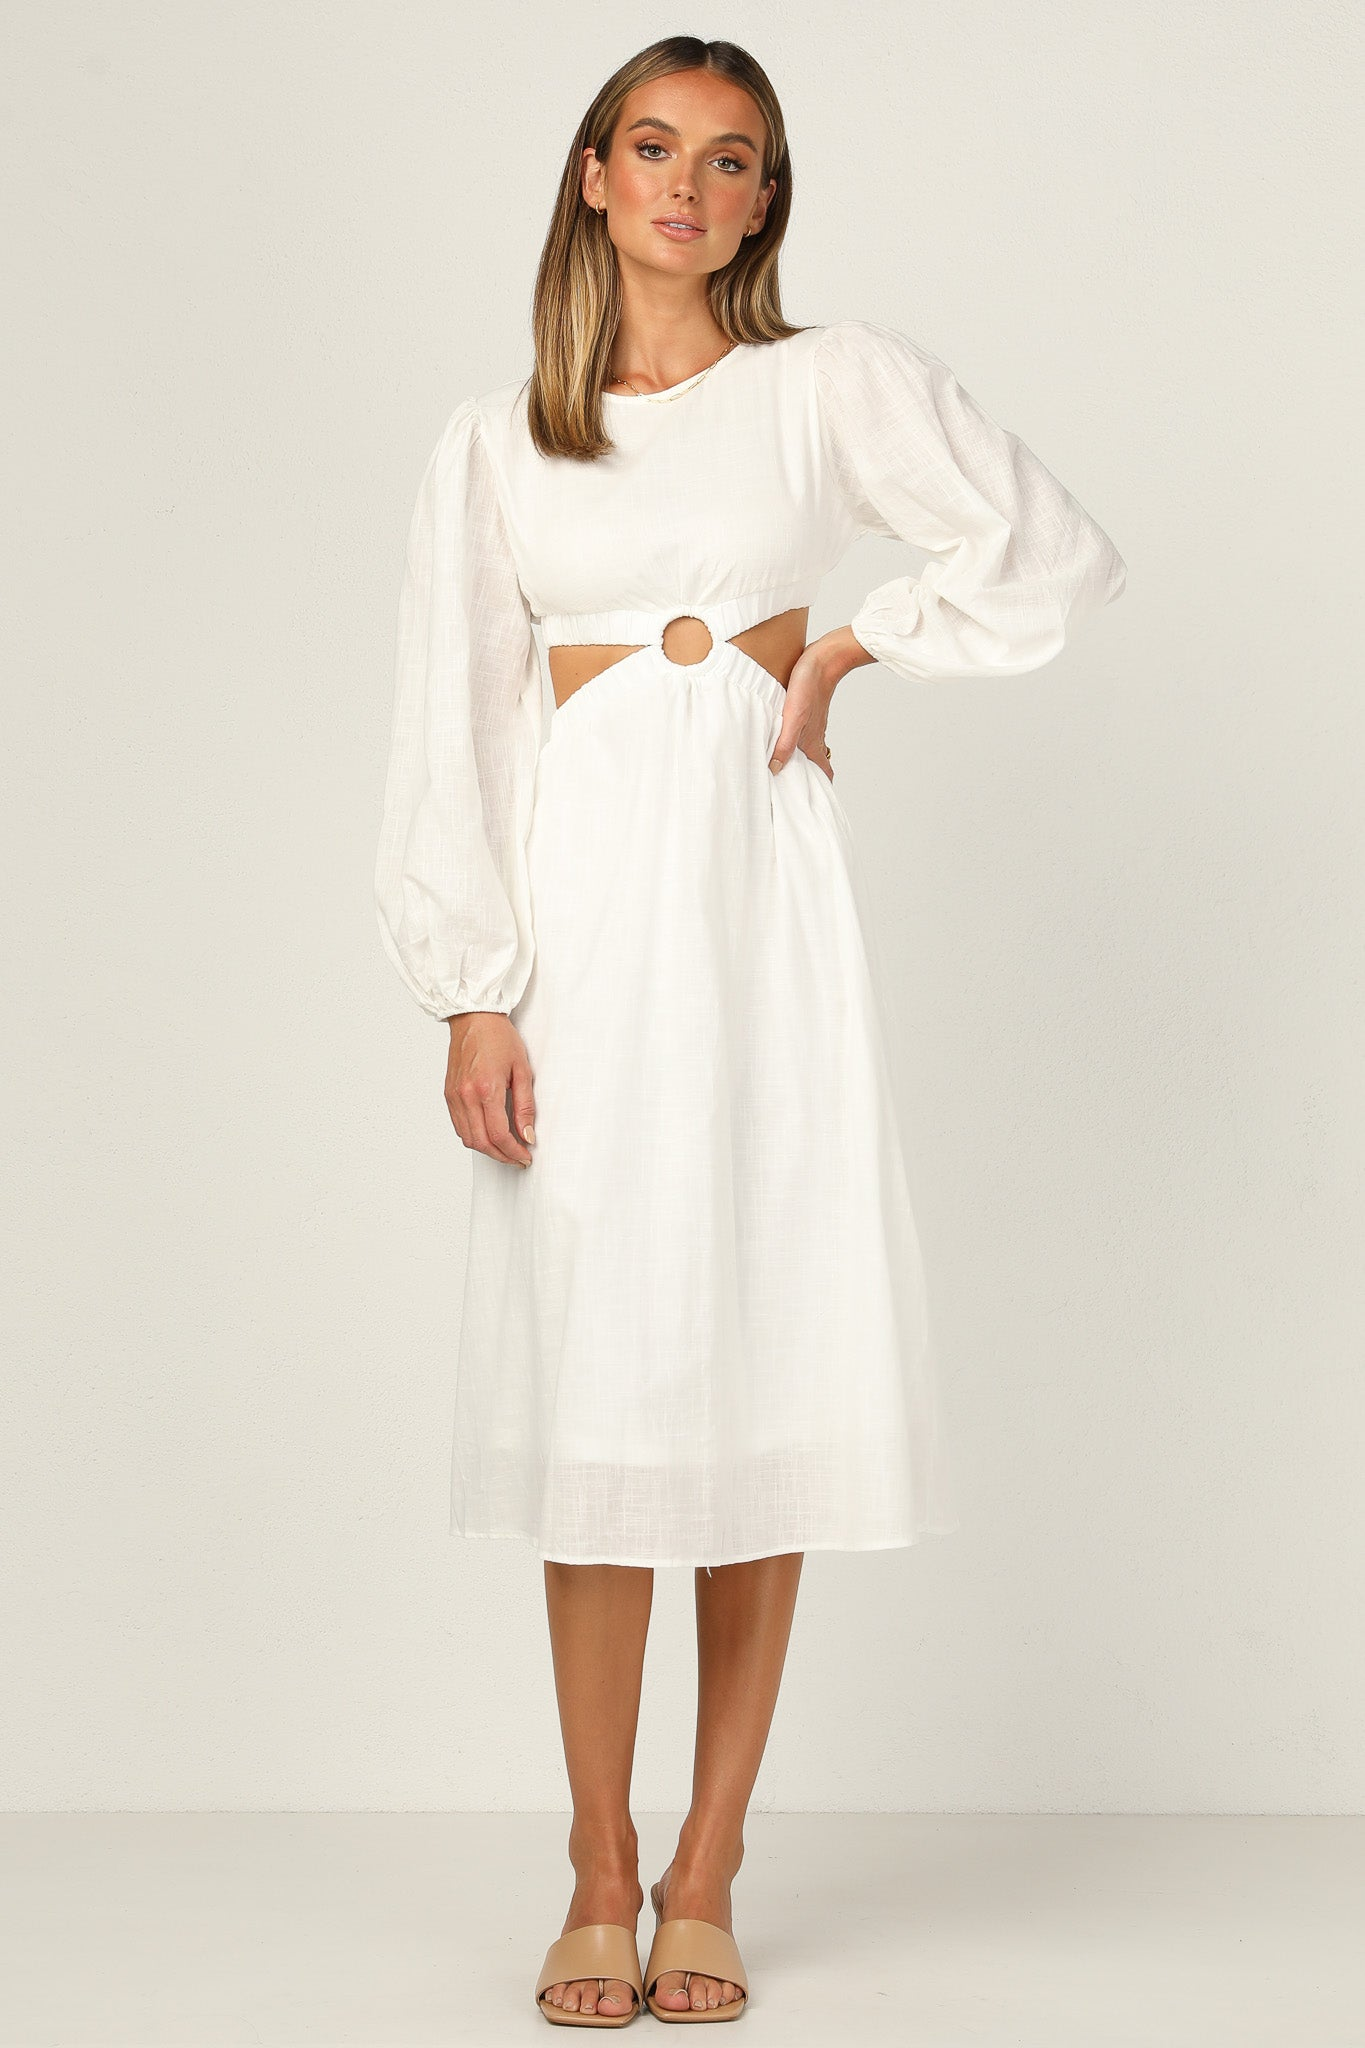 Trixie Dress (White)